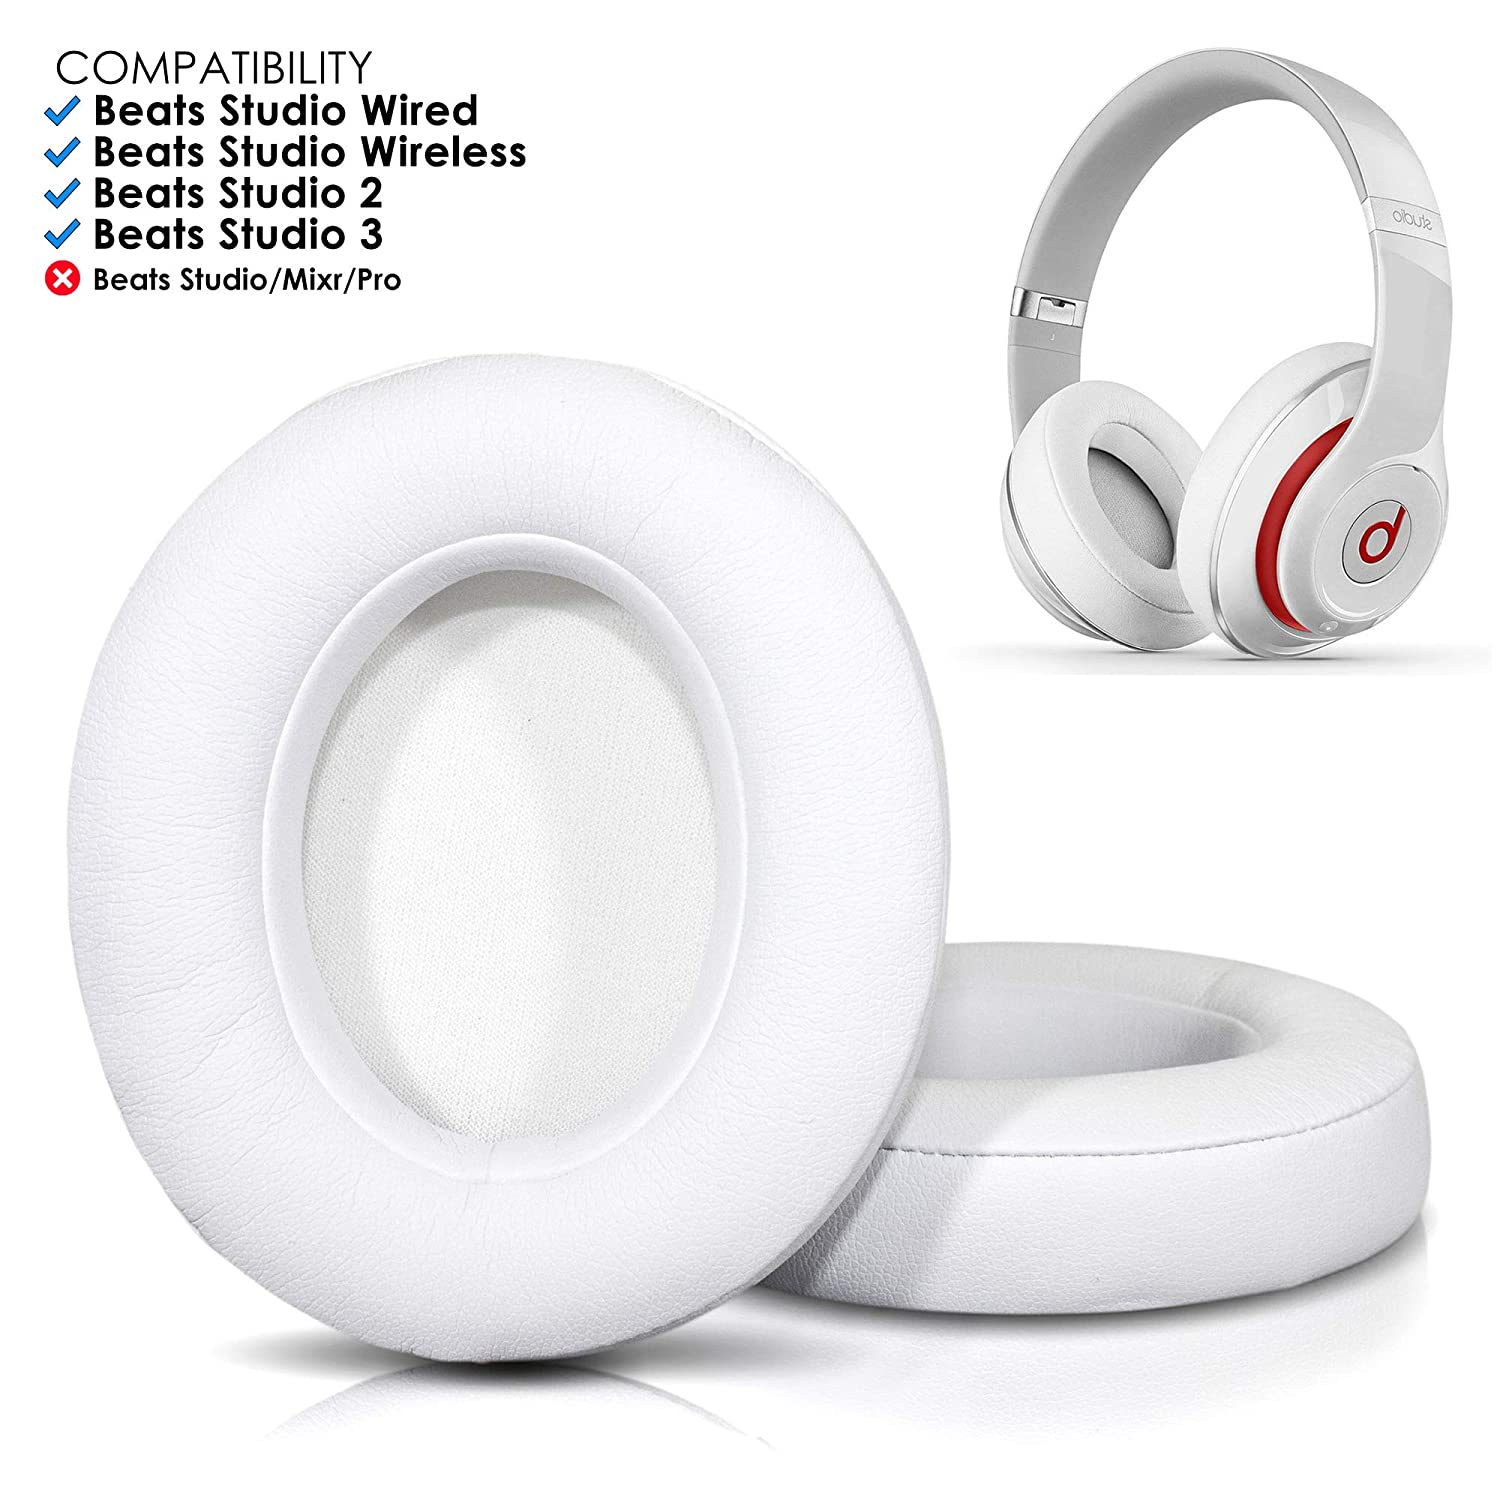 9380be36a61 Upgraded Beats Replacement Ear Pads by Wicked Cushions - Compatible with Studio  Wired B0500 / Wireless B0501 / Studio 2 and Studio 3 Over Ear Headphones ...